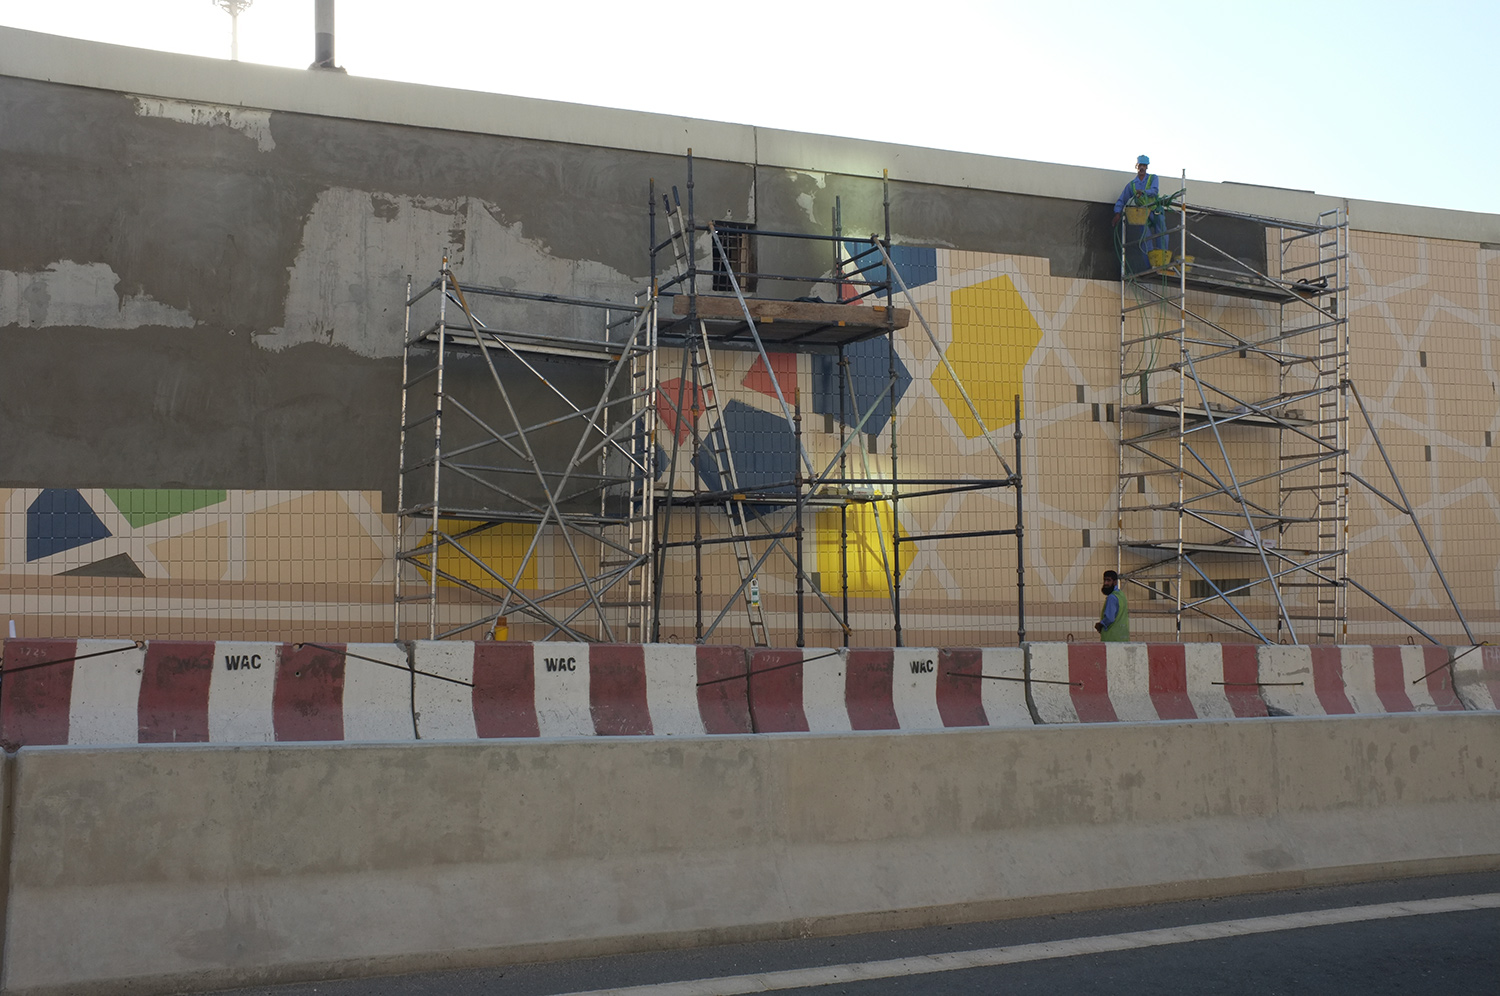 Mashrabiya pattern tiling work  West Underpass connecting DIFC and Business Bay, Dubai  Research image